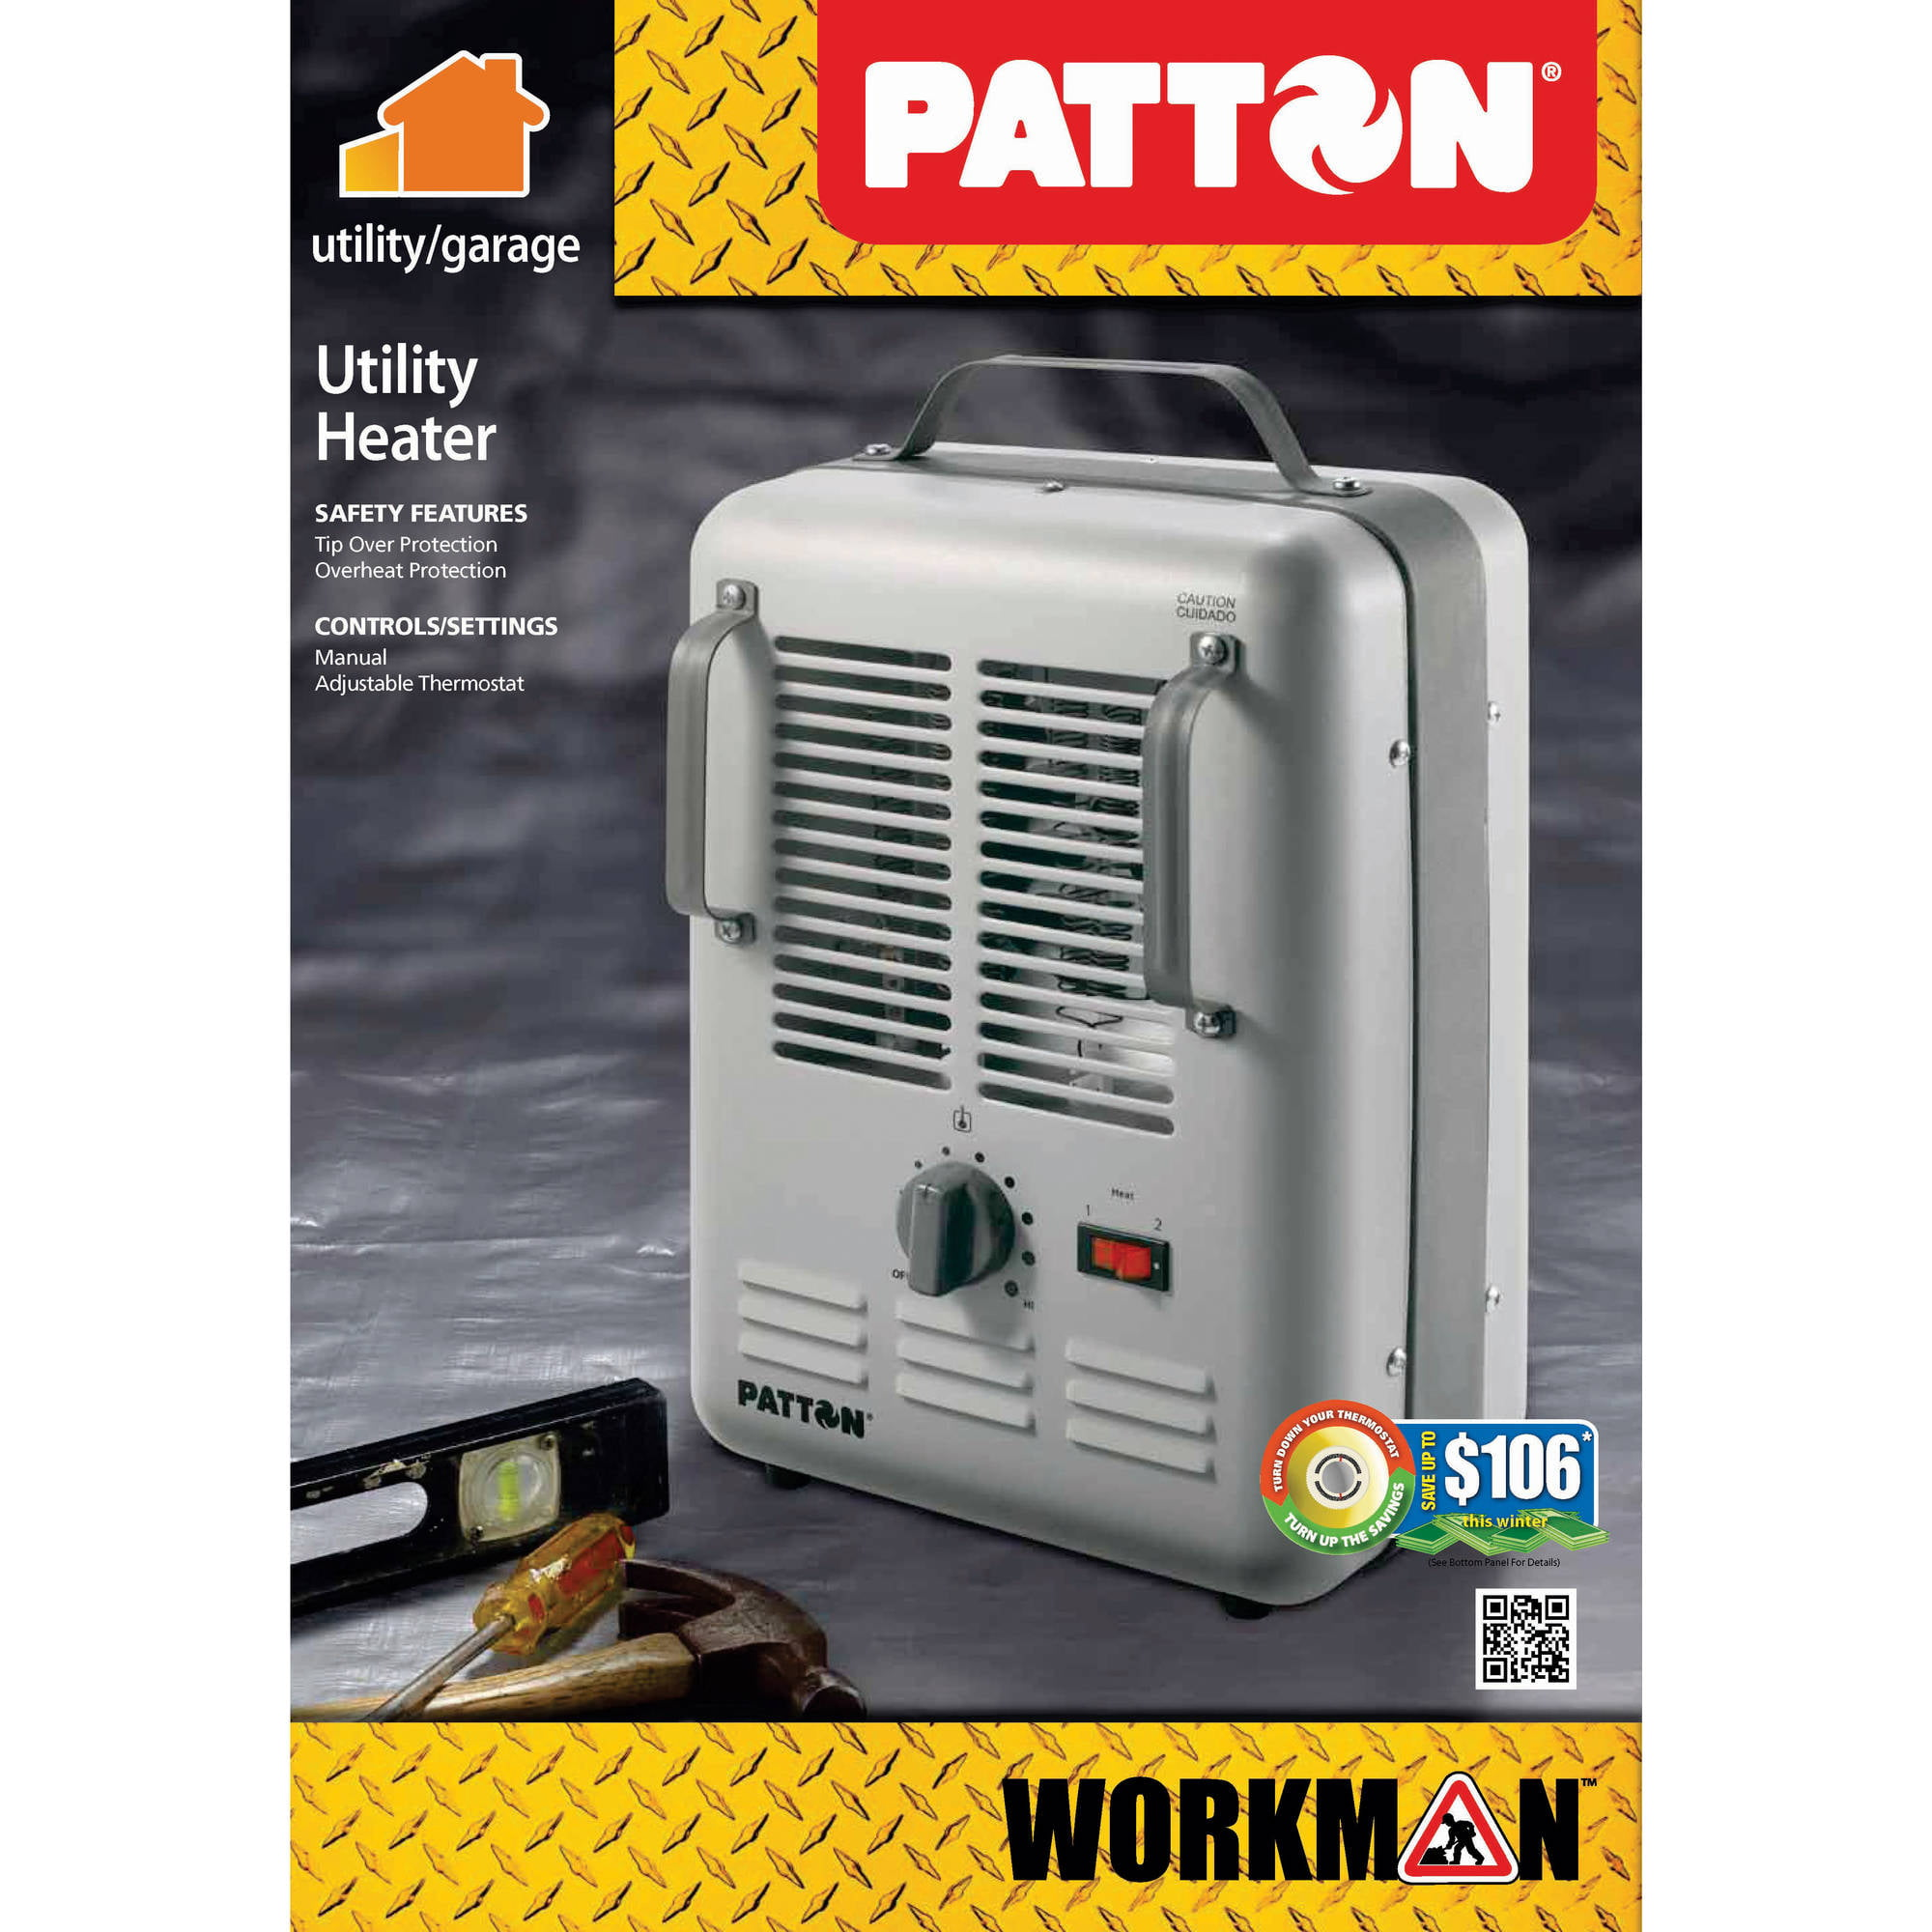 Patton Milkhouse Utility Electric Heater Puh680 Wm1